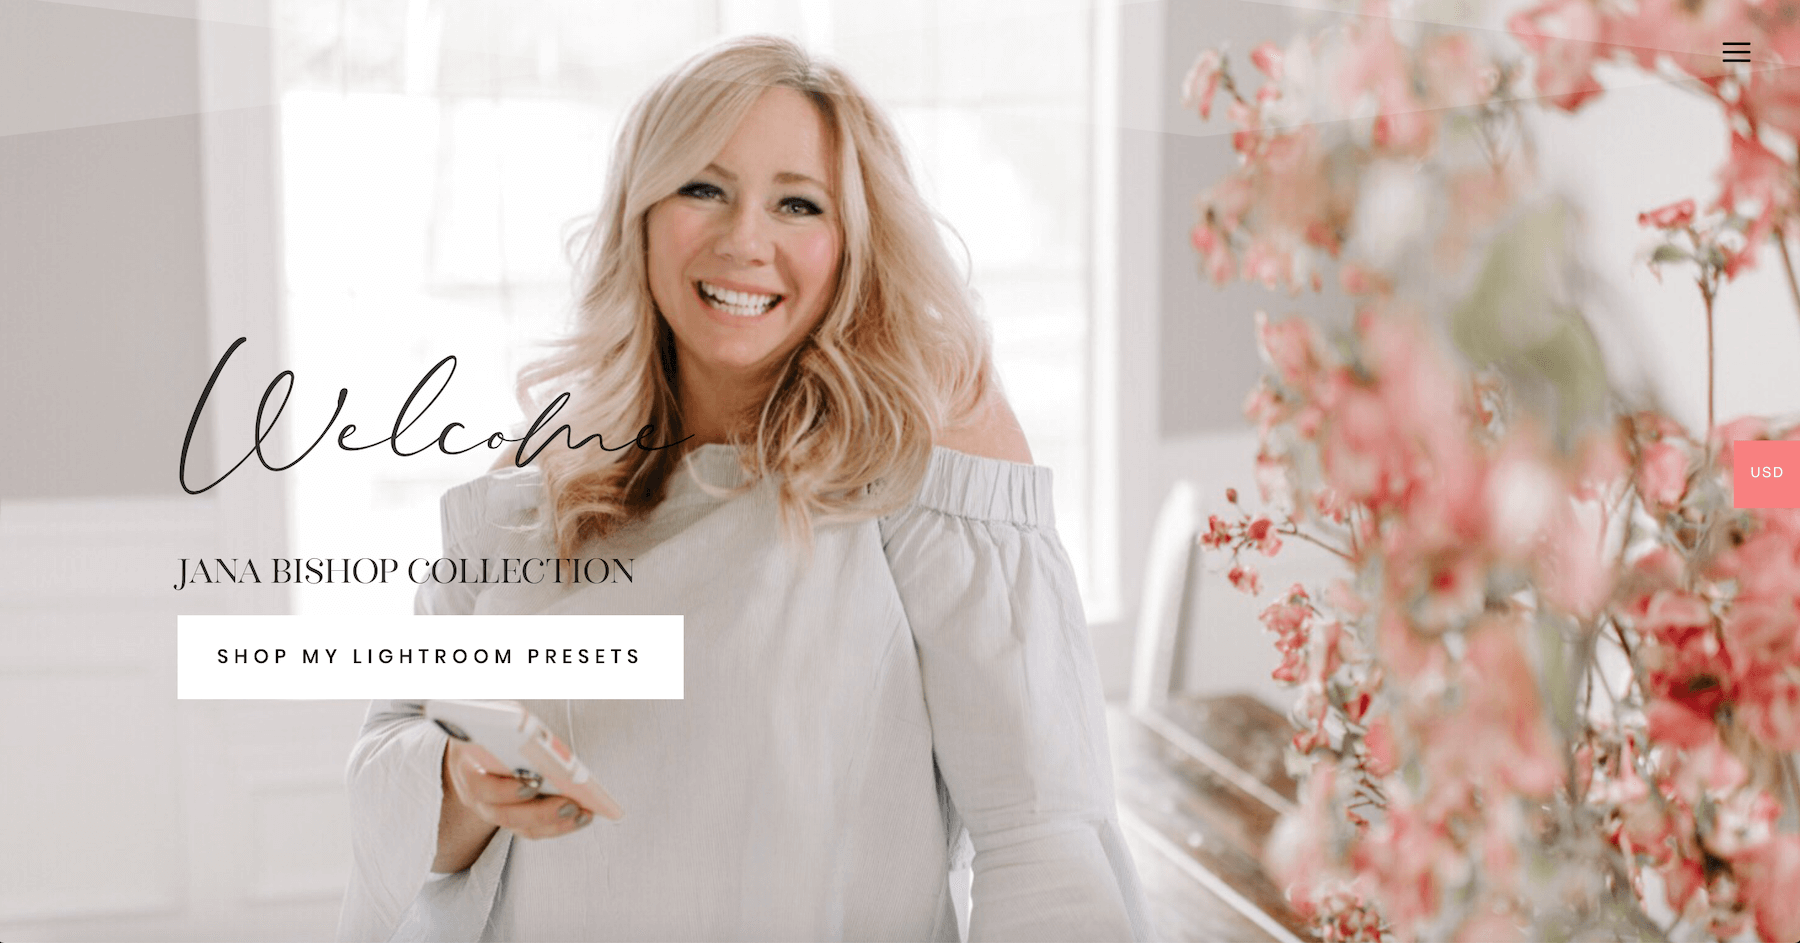 Jana Bishop Collection - Stock Photos and Lightroom Presets